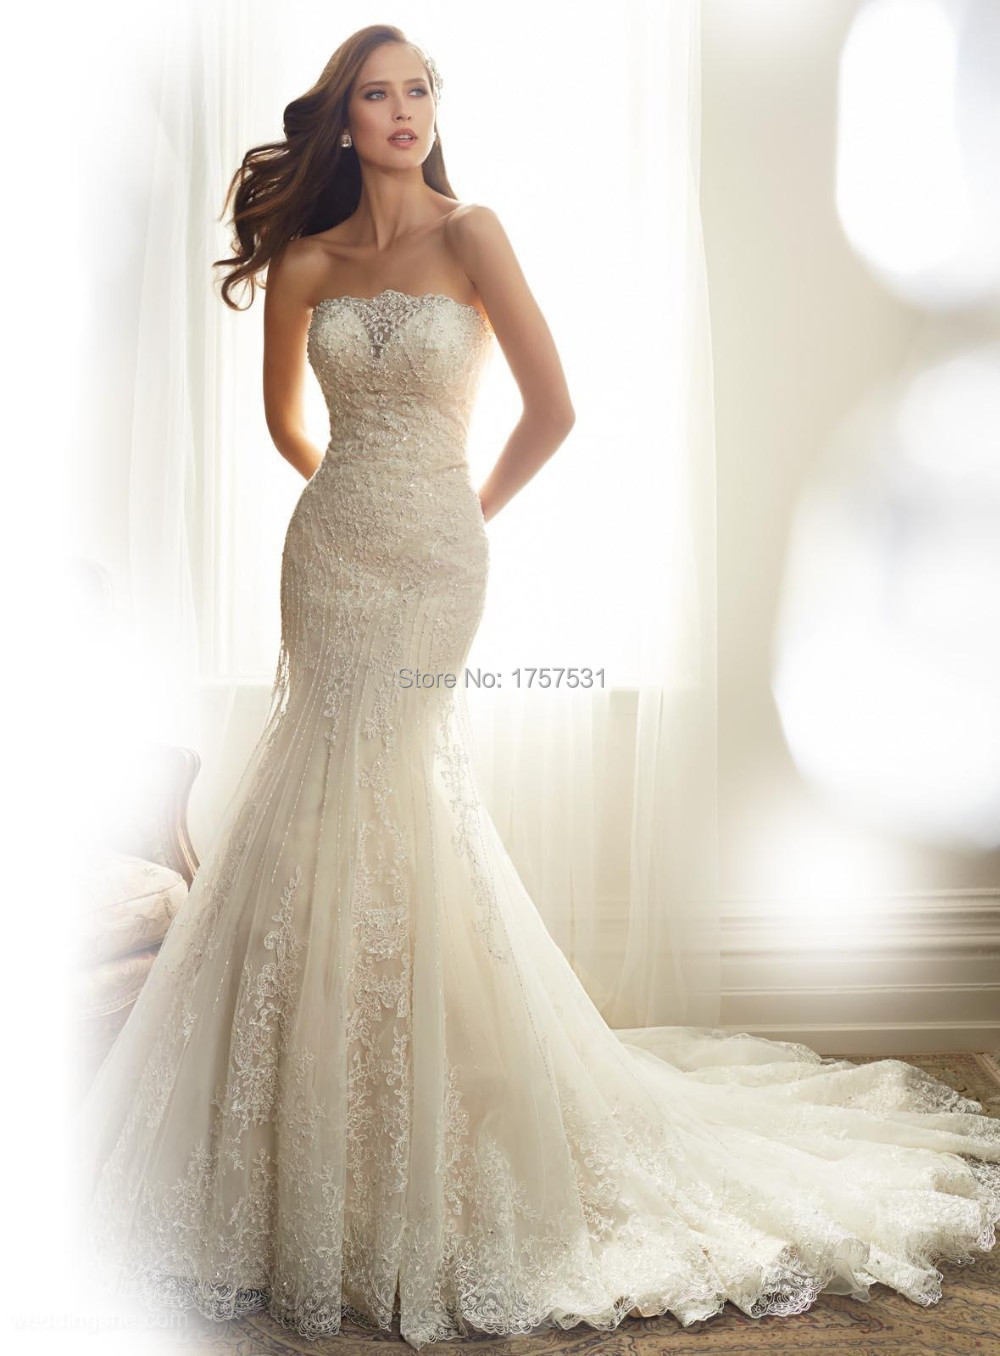 Charming 2015 white ivory elegant mermaid wedding dress for Beaded lace mermaid wedding dress